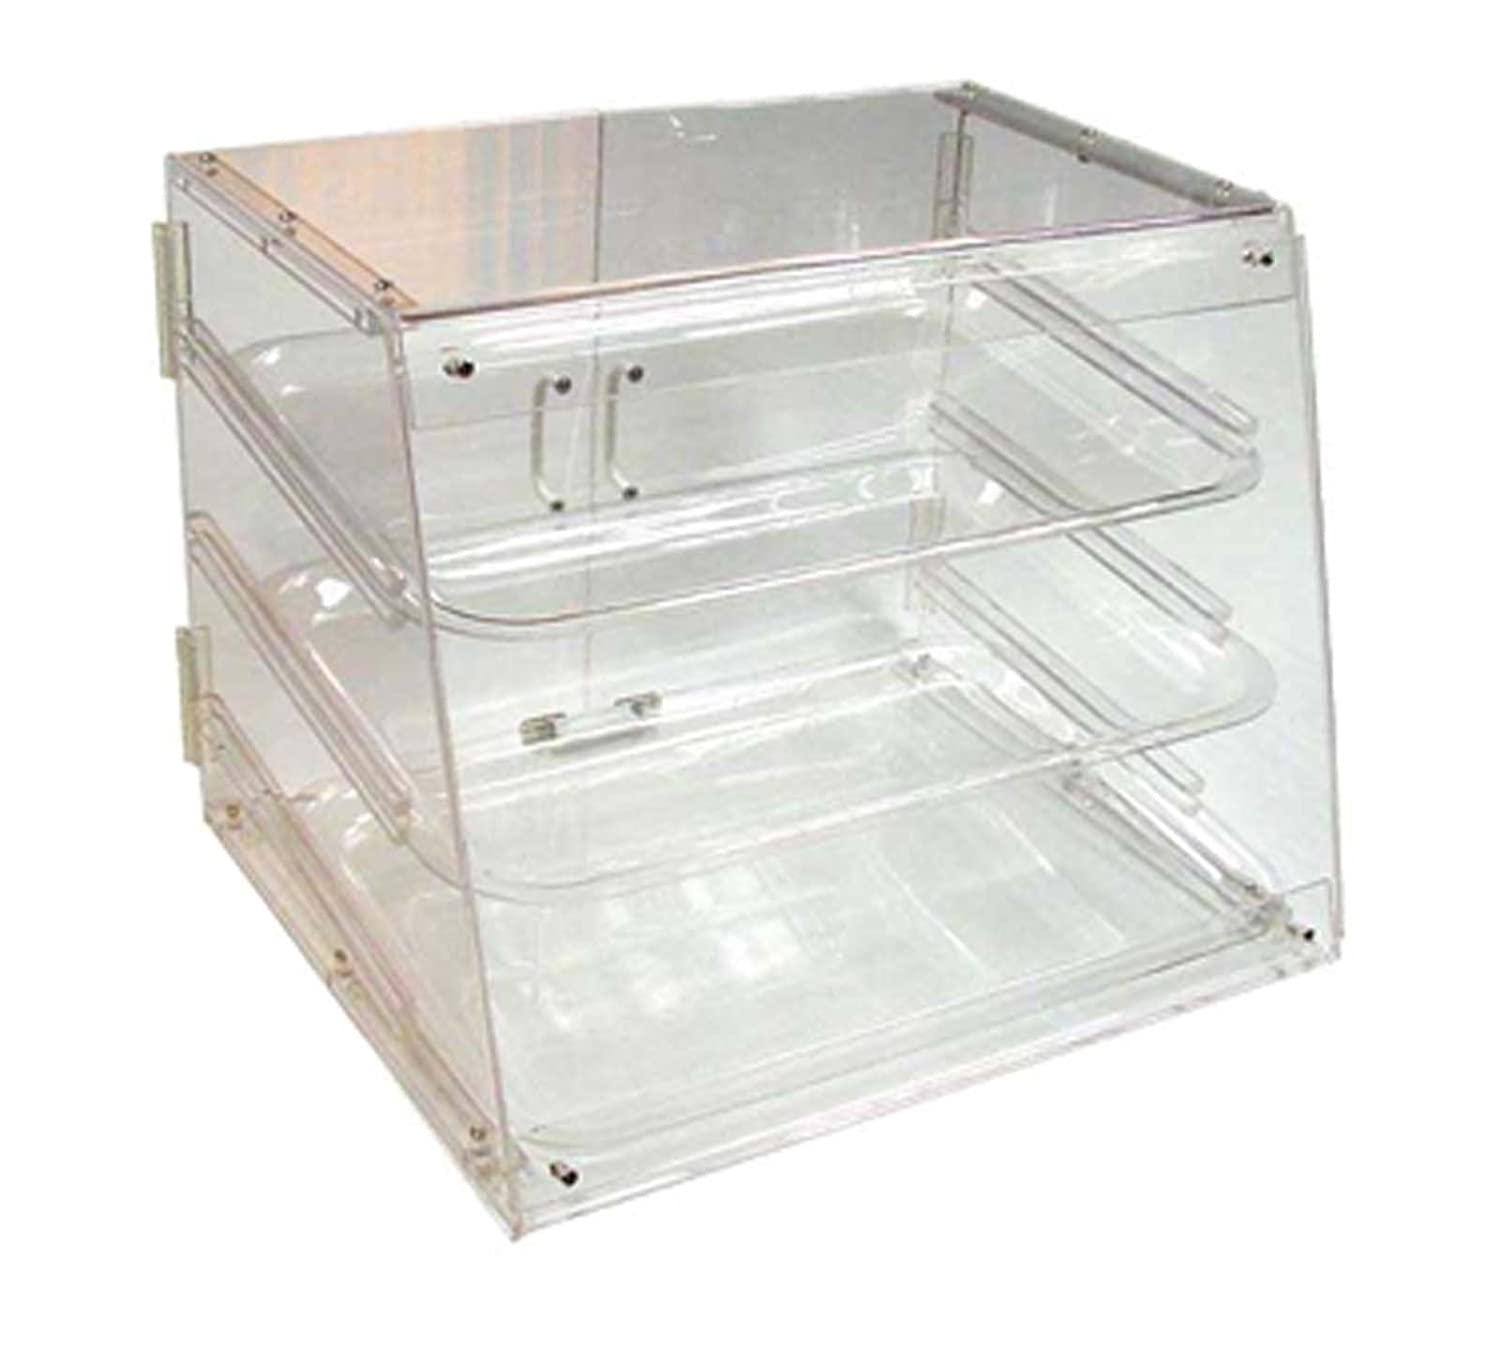 mil pastry countertops bamboo product cal di products categories countertop bakery inc plastic browse case display cases